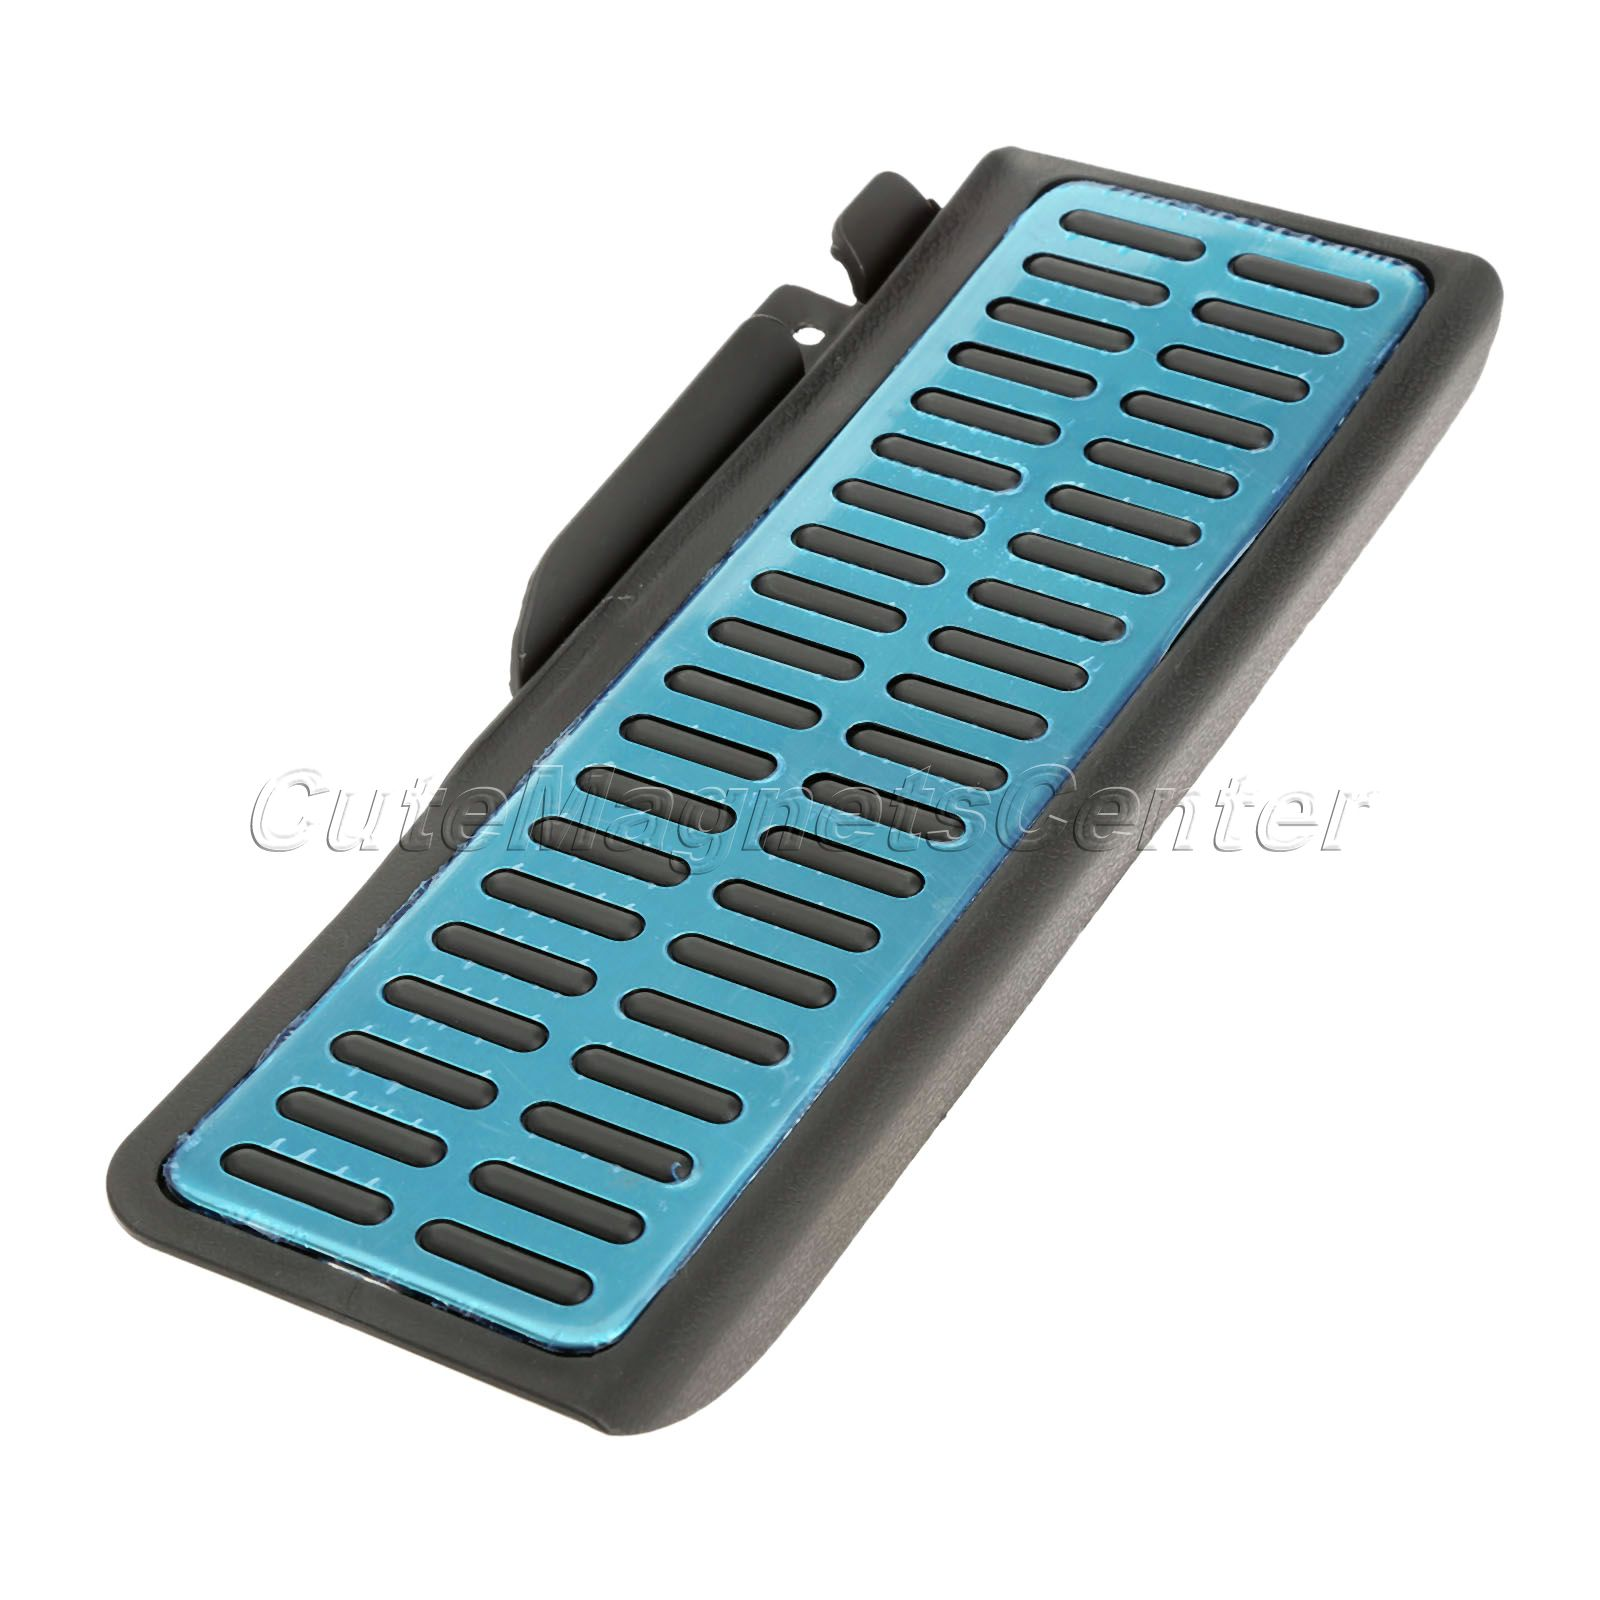 Car Accessories Foot Rest Pedal Cover Only for Left-Hand-Drive (LHD) Car Styling Fitment for Golf6 Scirocco (Manual Transmission